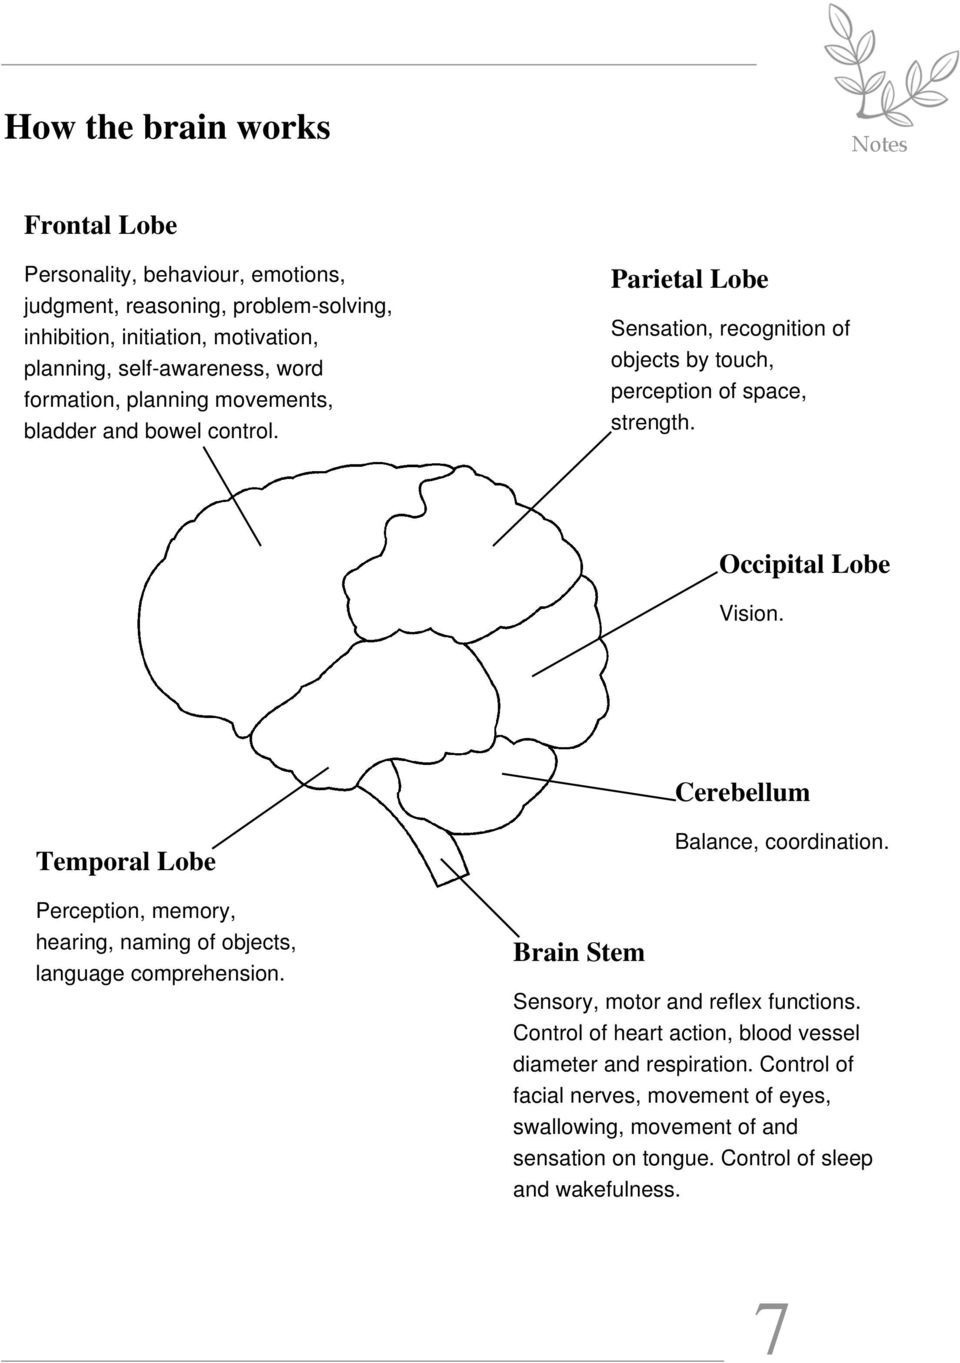 Cerebellum Temporal Lobe Perception, memory, hearing, naming of objects, language comprehension. Brain Stem Balance, coordination. Sensory, motor and reflex functions.